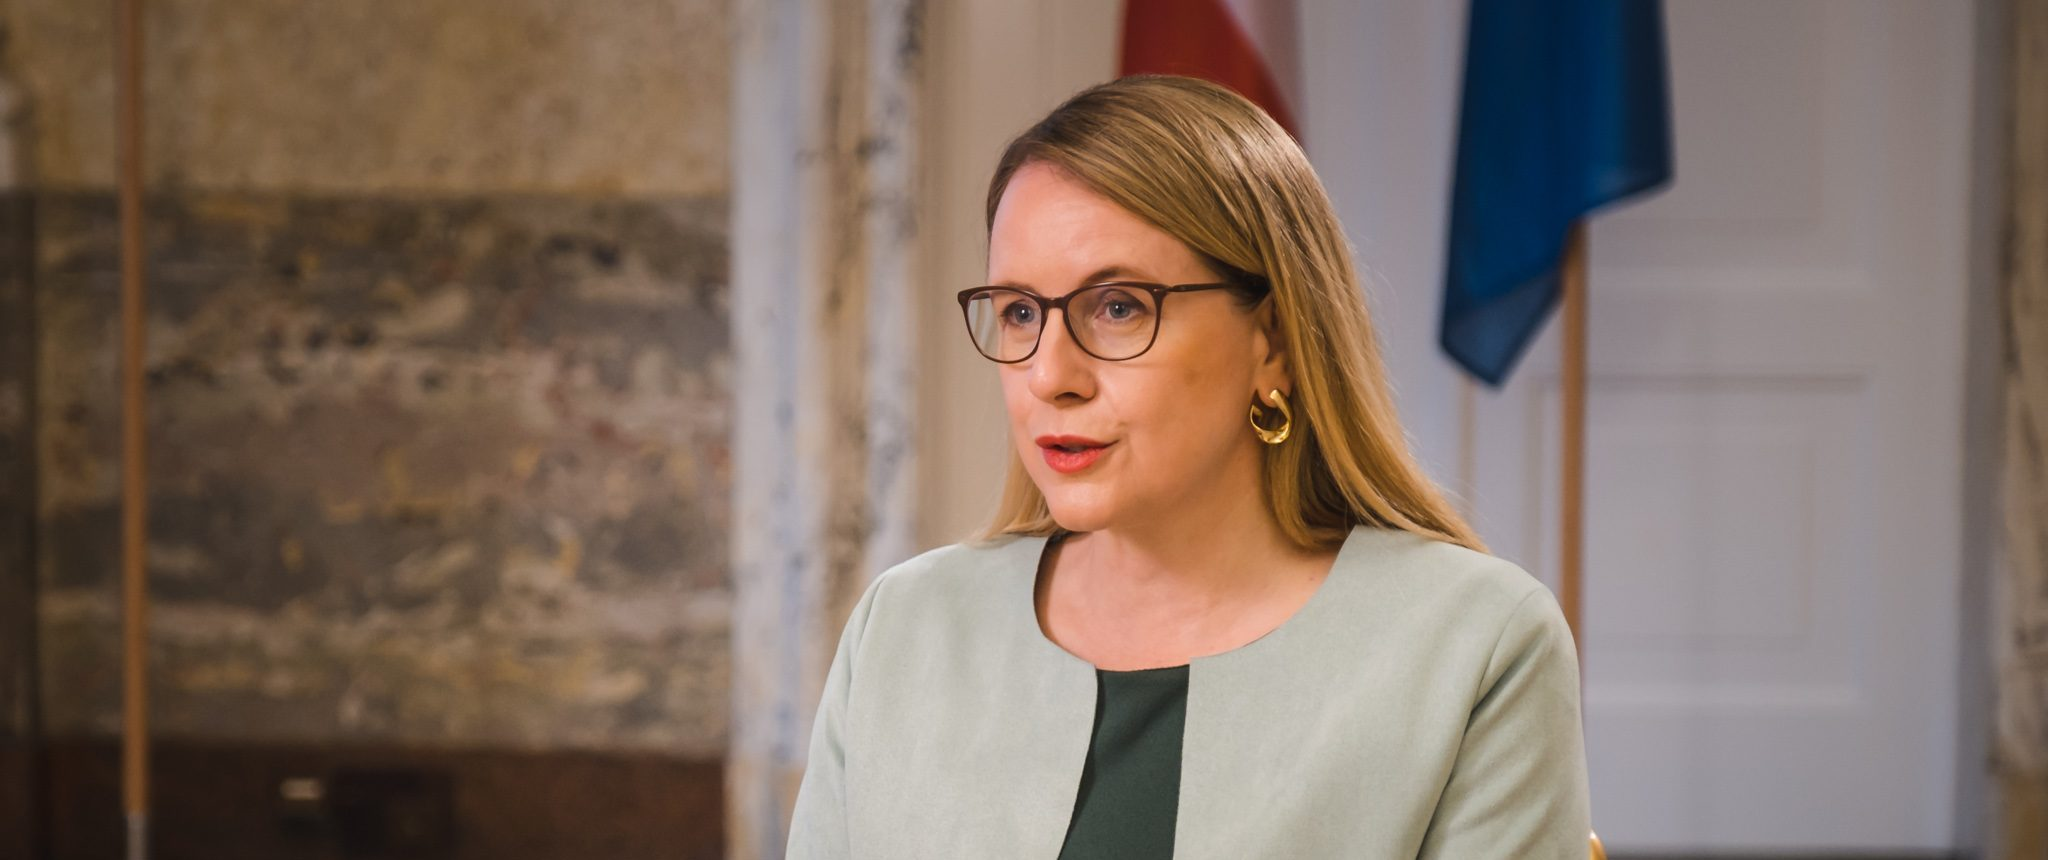 Interview With Dr. Margarete Schramböck, Austria's Federal Minister For Digital And Economic Affairs